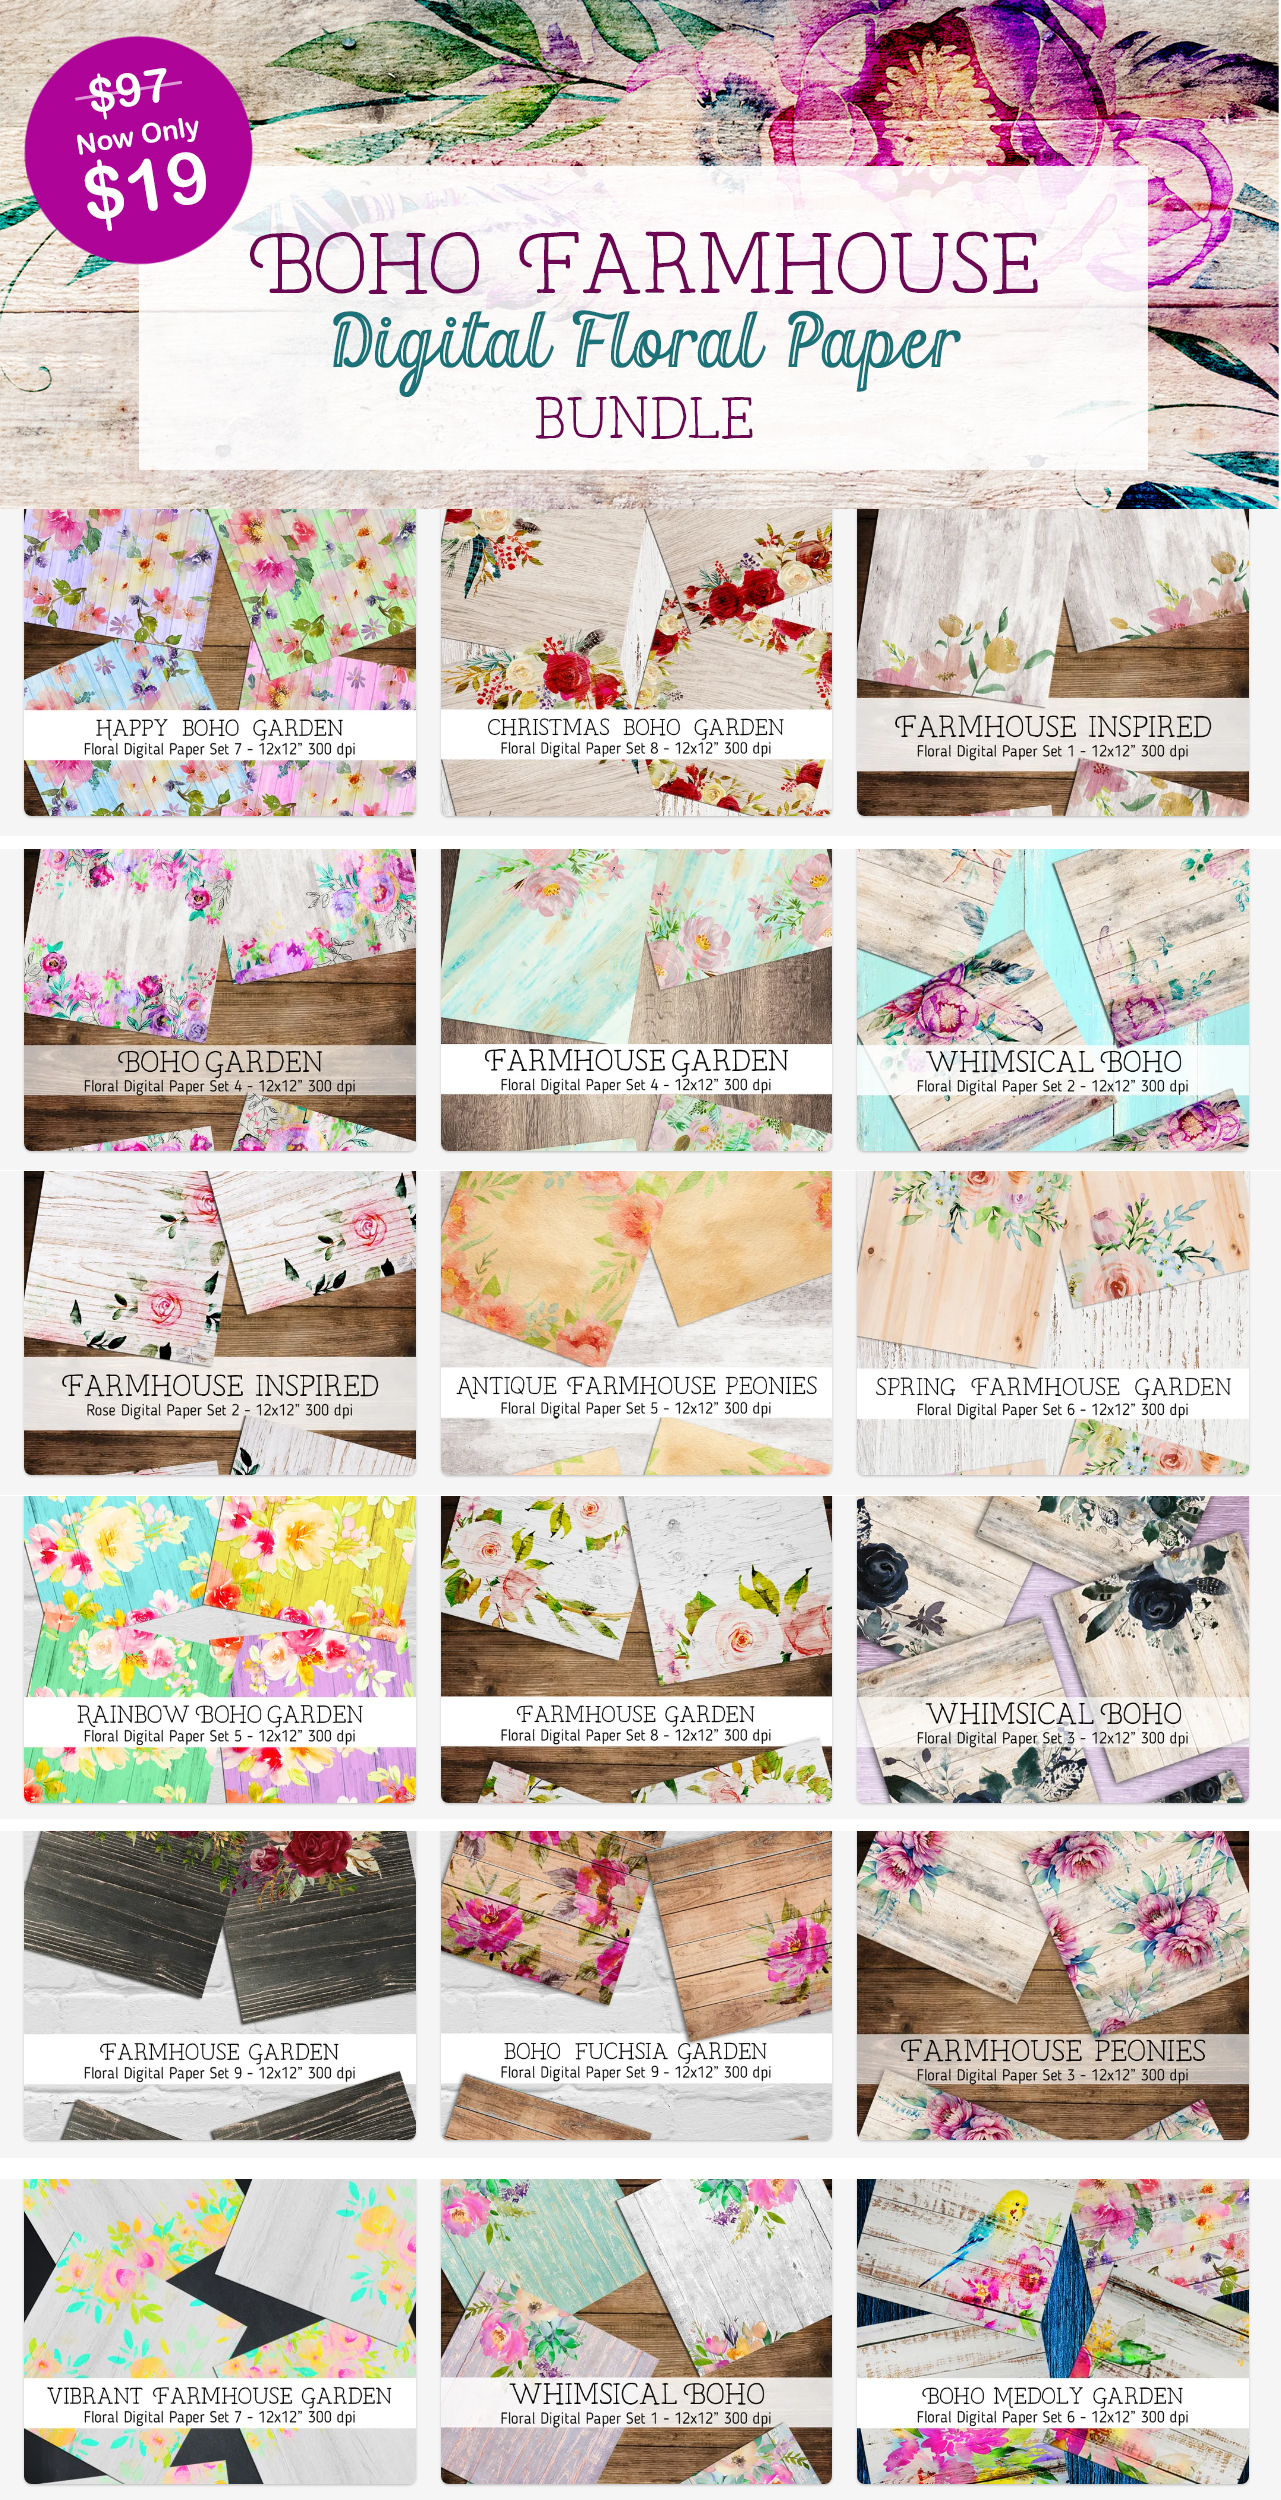 Boho Farmhouse digital floral Papers